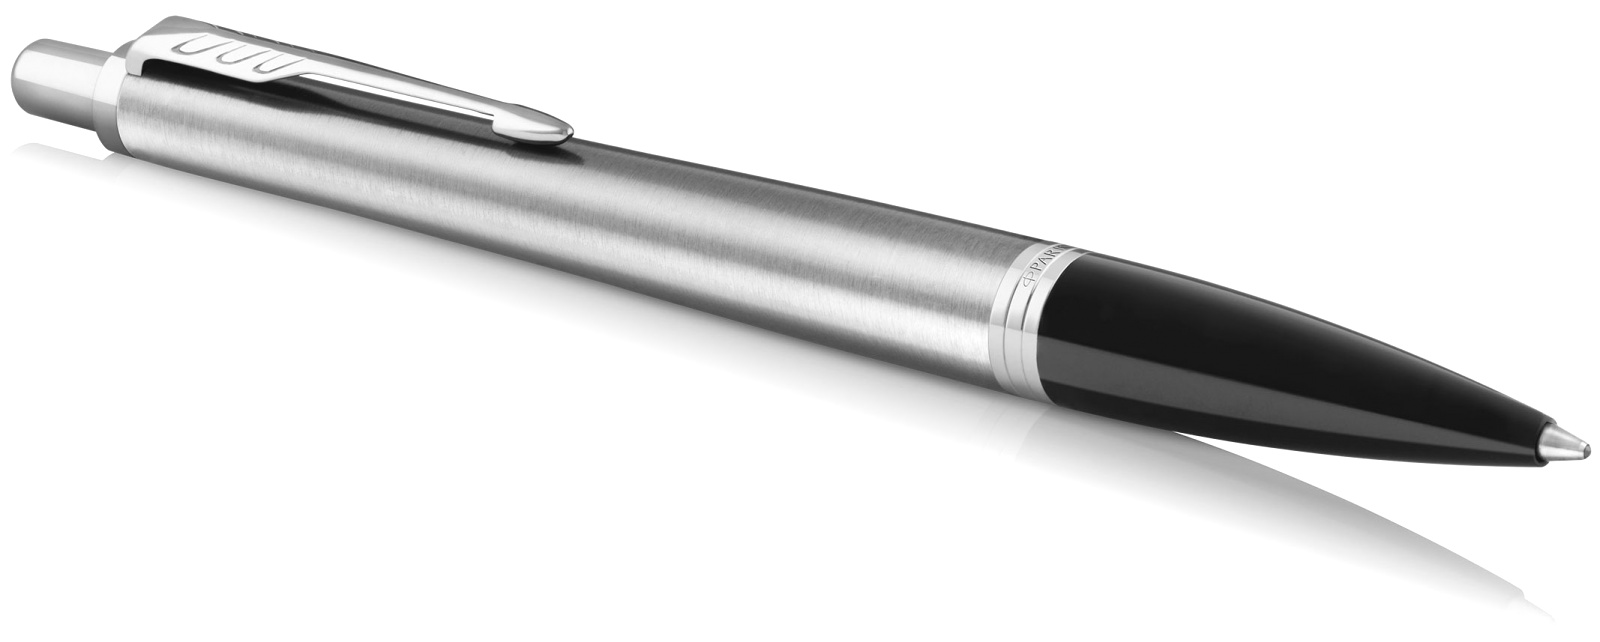 Ручка шариковая Parker Urban Core K309, Metro Metallic CT, фото 2